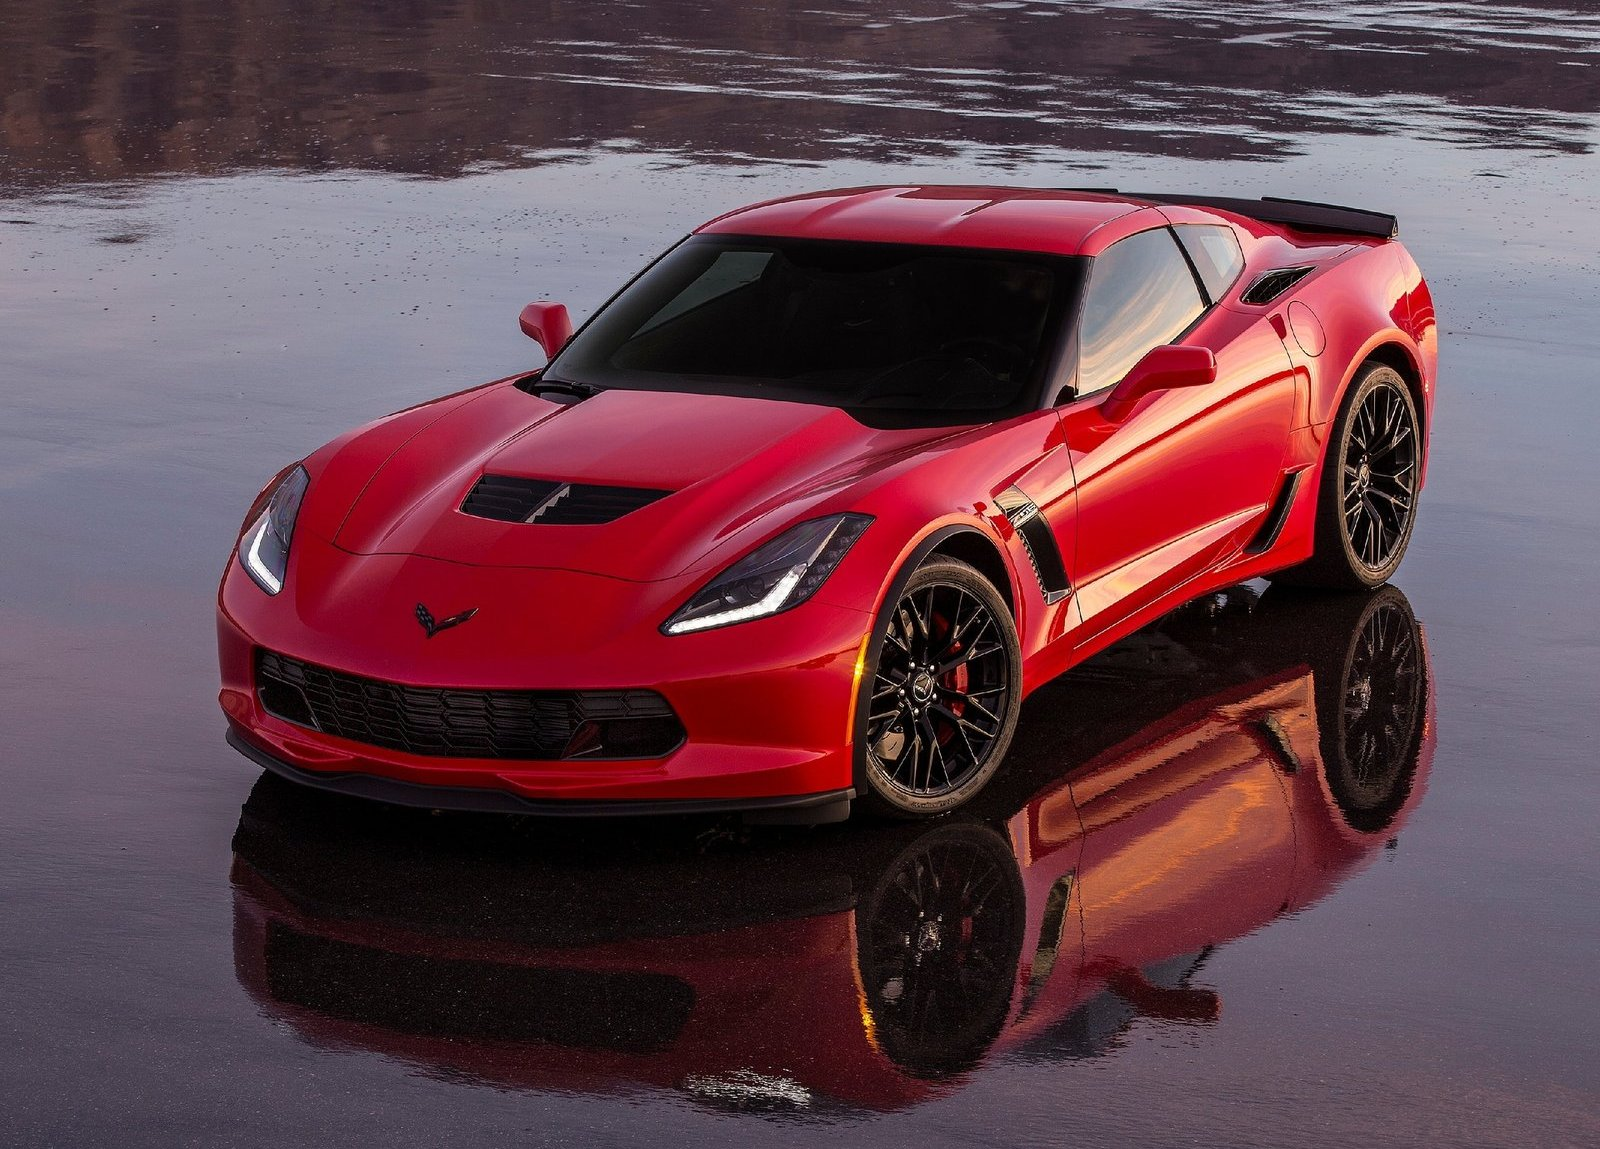 2014 Corvette Stingray For Sale >> First Production 2015 Corvette Z06 Auctioned for Charity ...